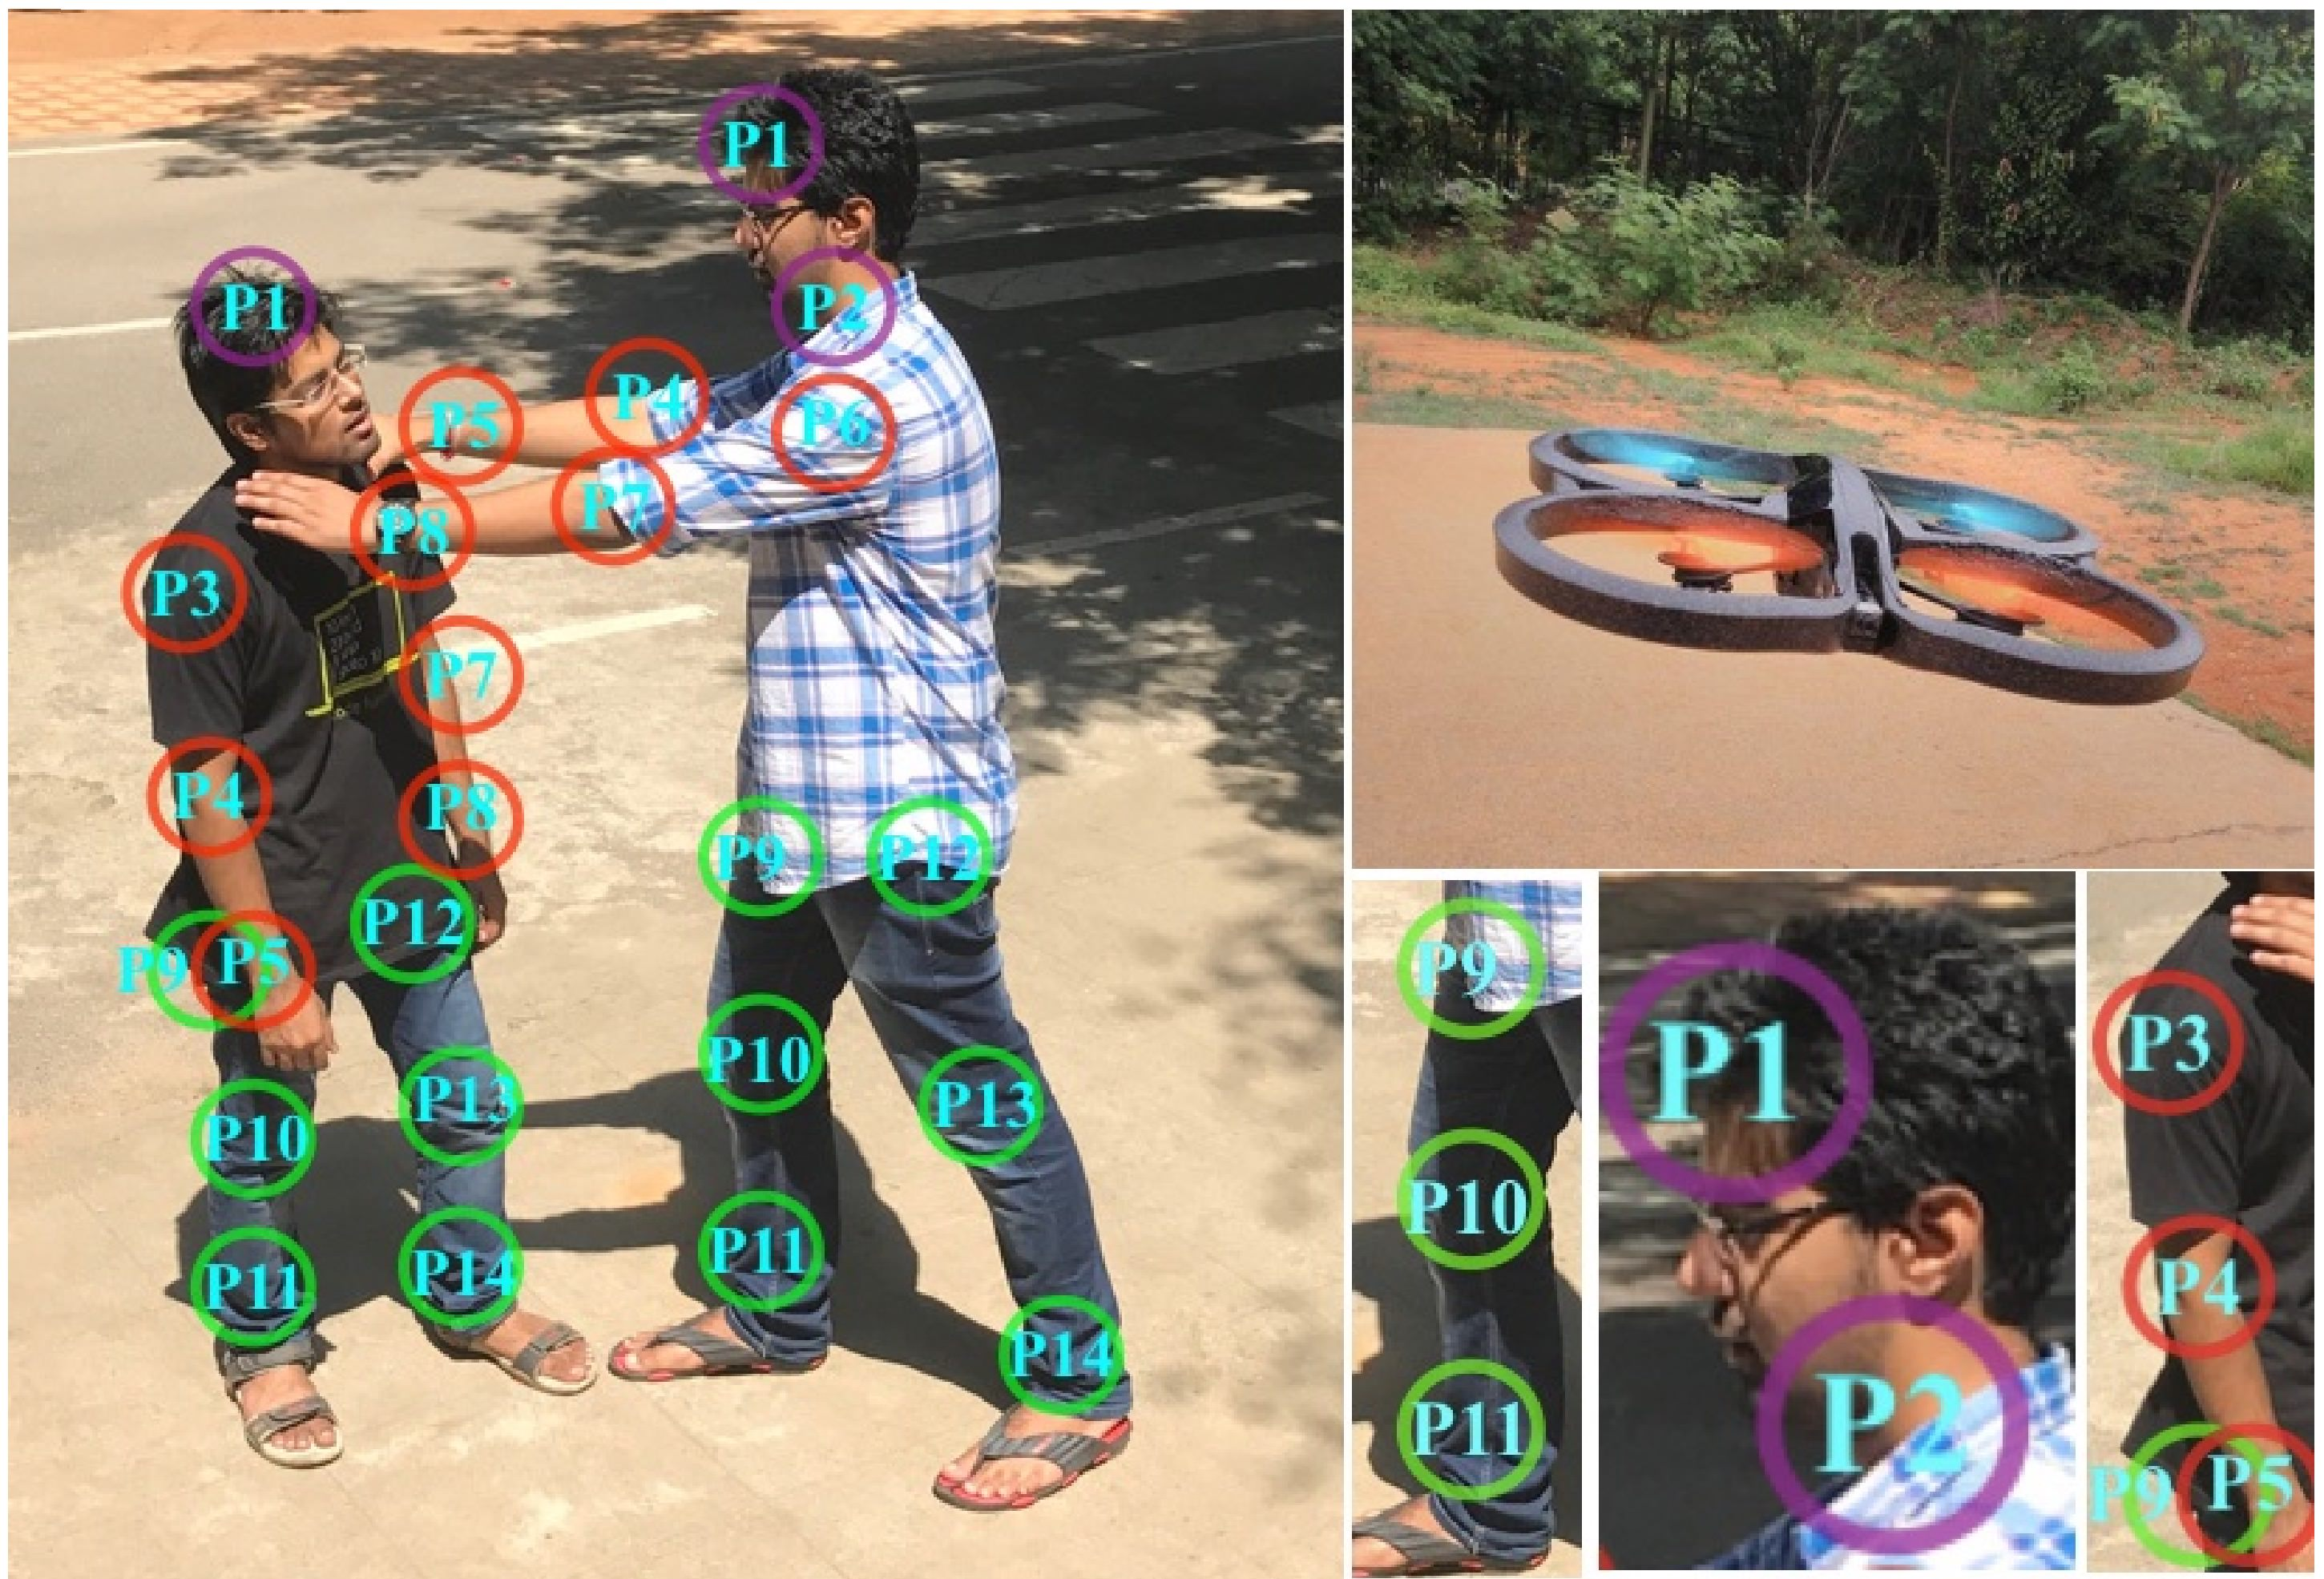 Using a drone and AI to spot fighting people in a crowd